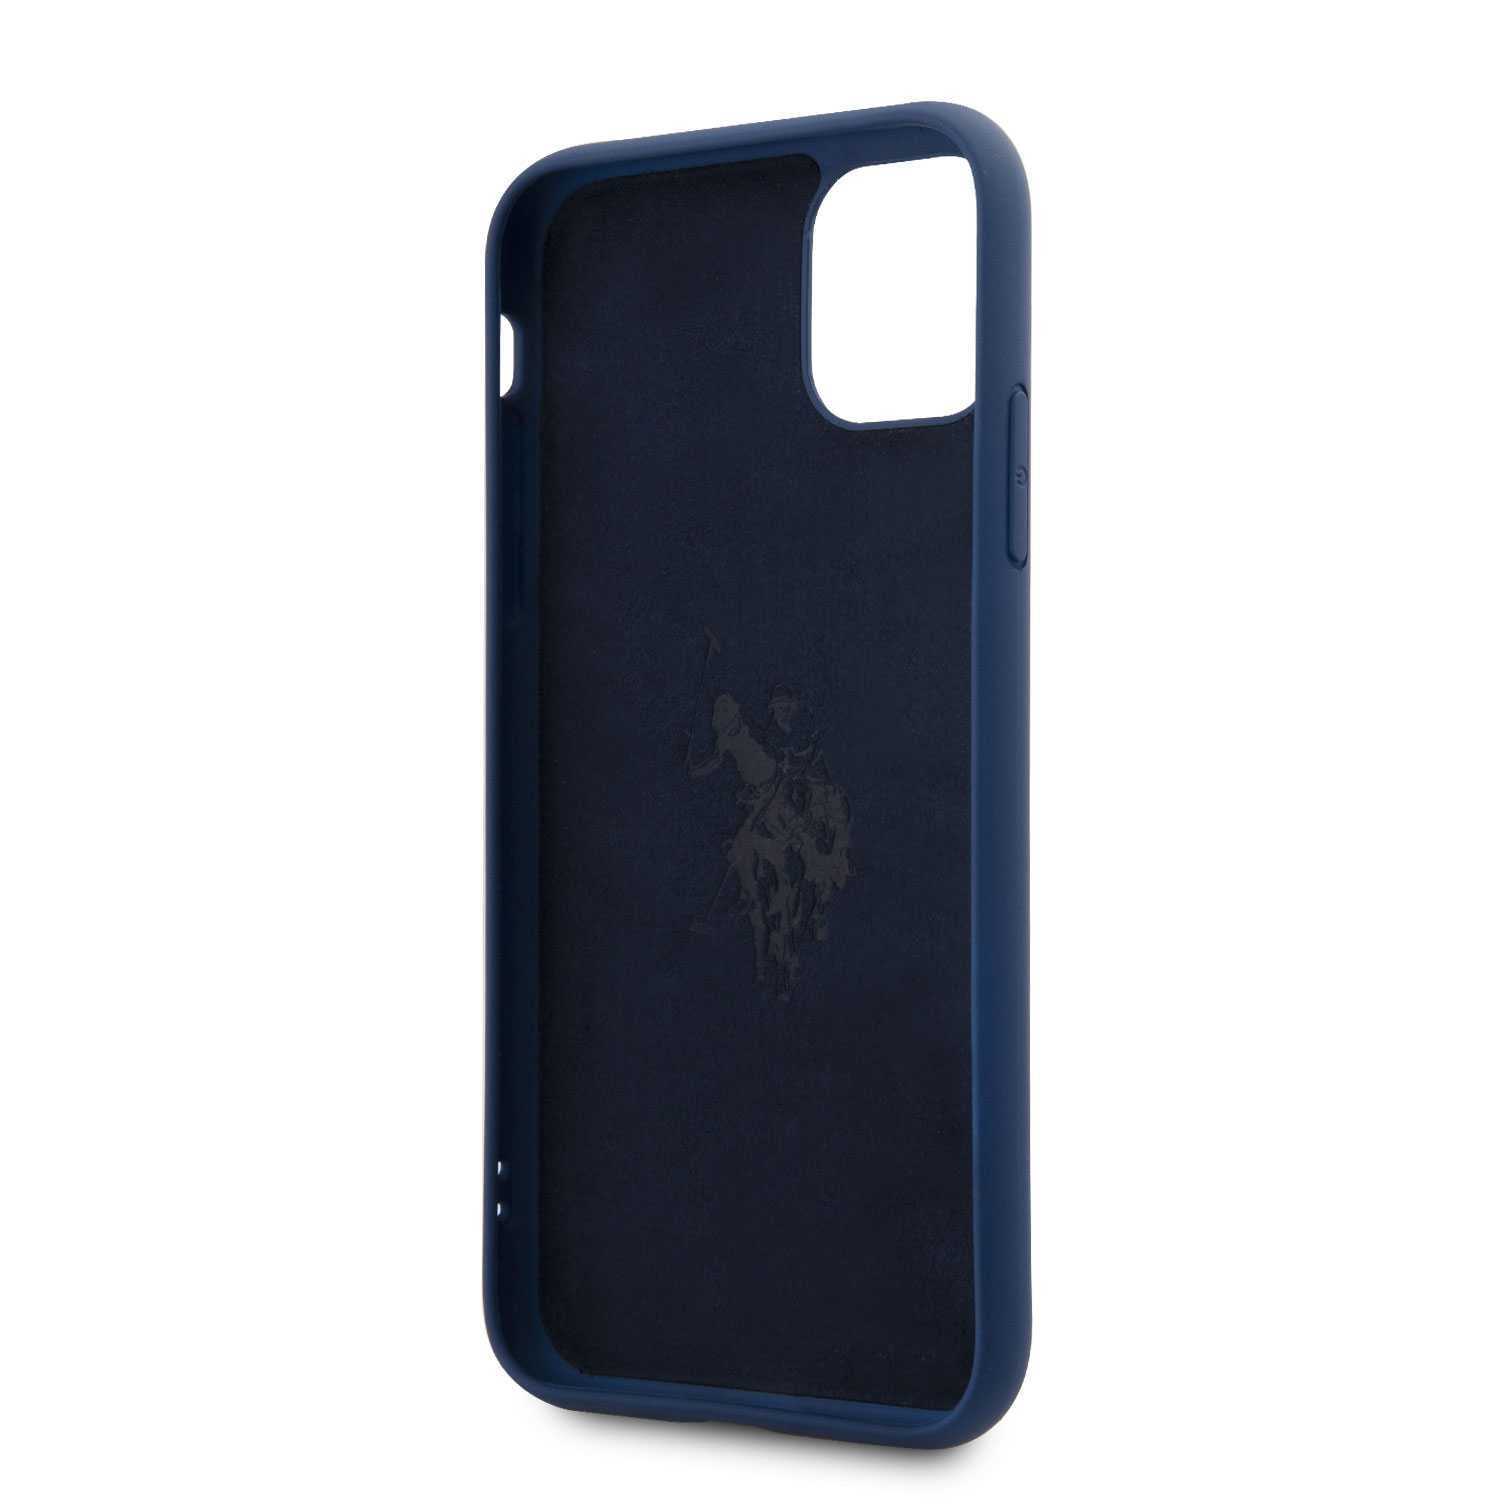 U.S.Polo Assn.Silicone Effect Case Vertical Logo for iPhone (2019) - Blue